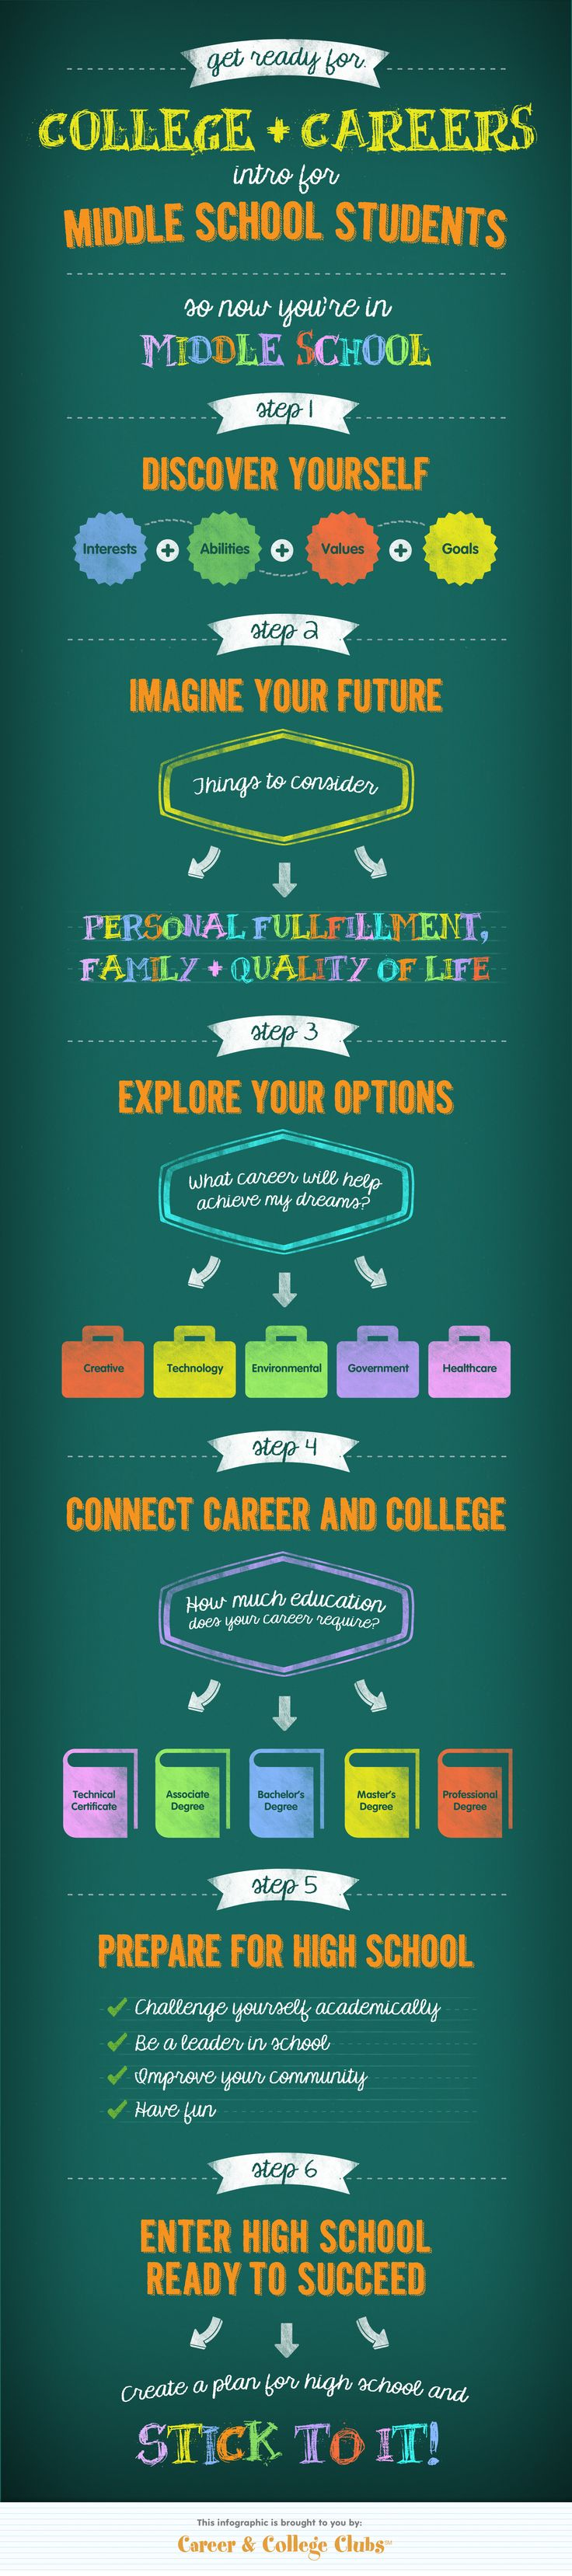 best ideas about career exploration middle career college clubs has designed a fun and easy to follow infographic that gives middle school students the essential steps to prepare for high school